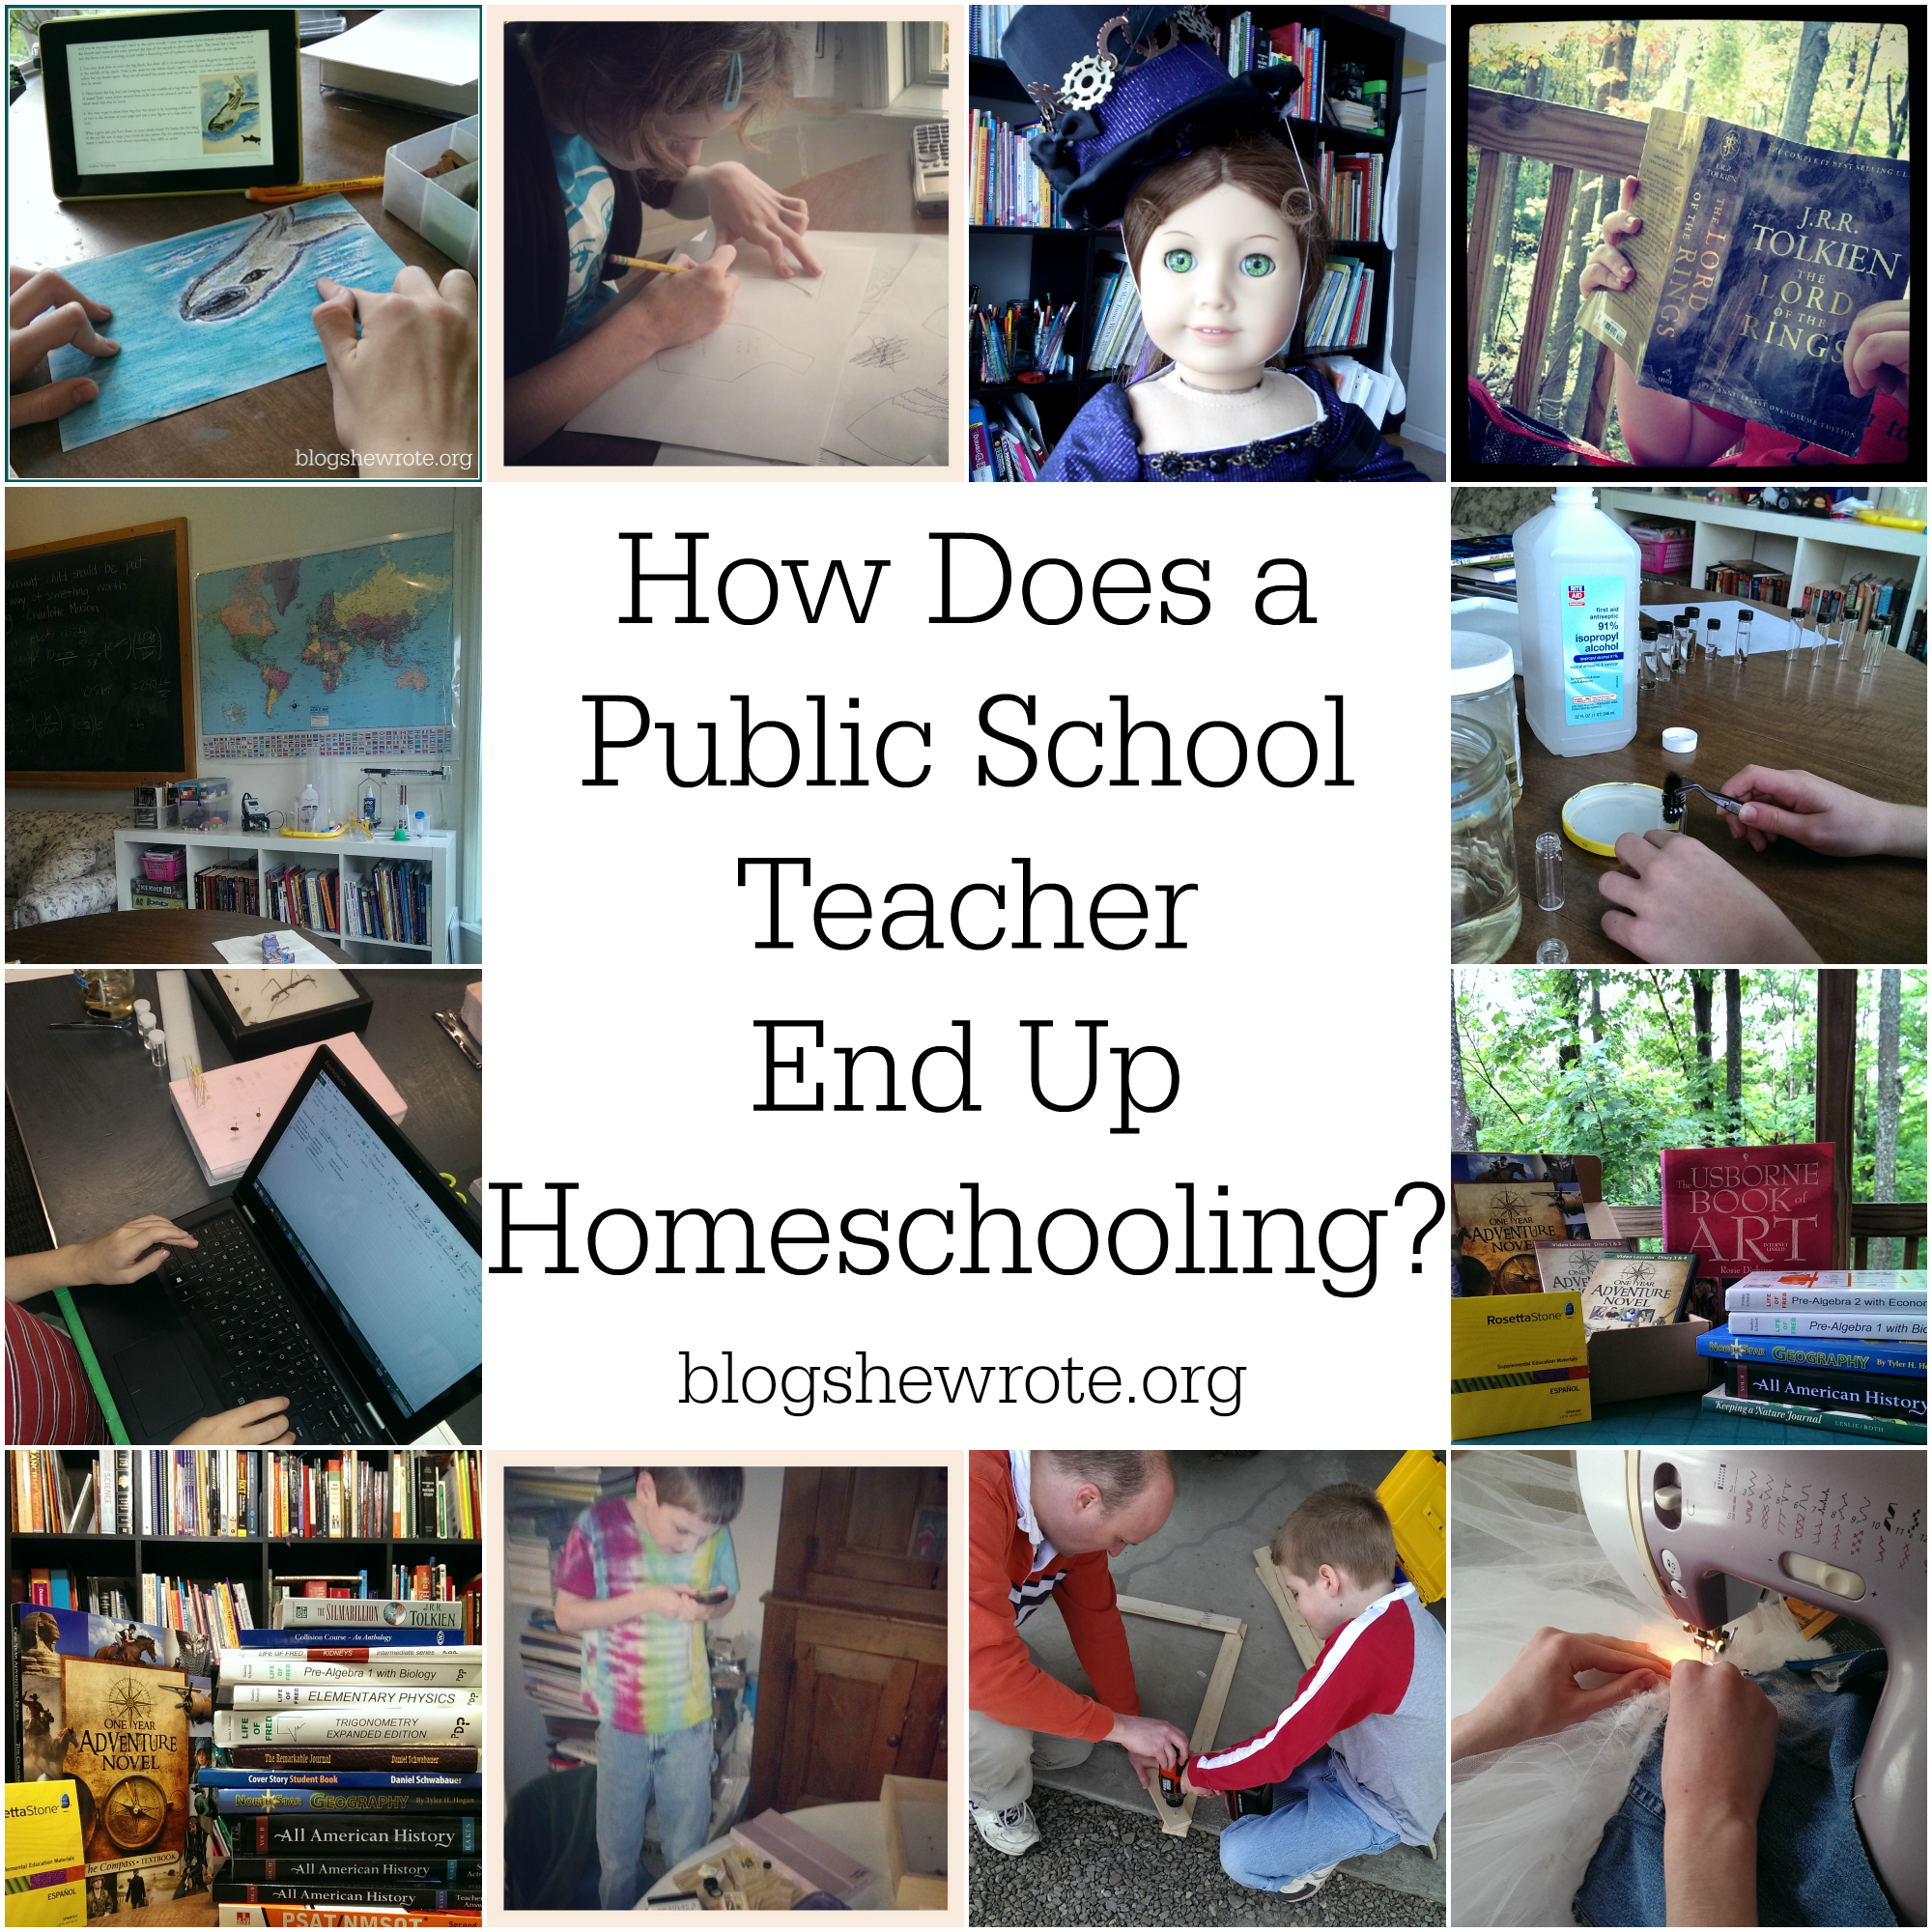 Stem Project Based Learning For Homeschool High School: How Does A Public School Teacher End Up Homeschooling